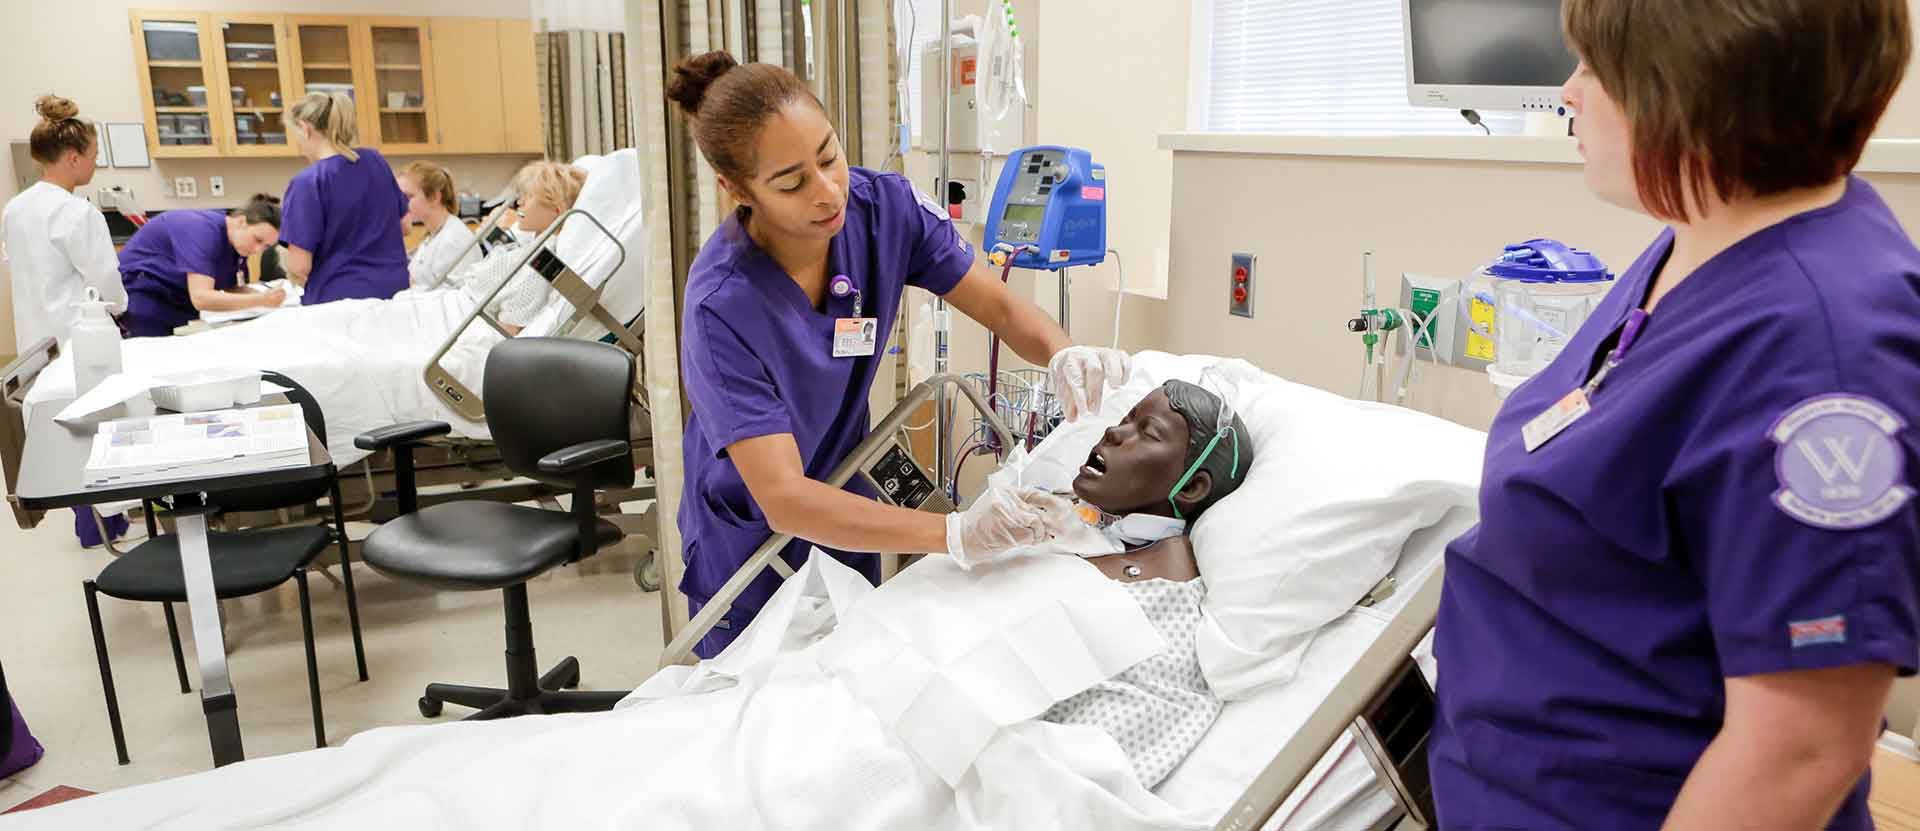 Nursing students practice procedures in Nursing Lab